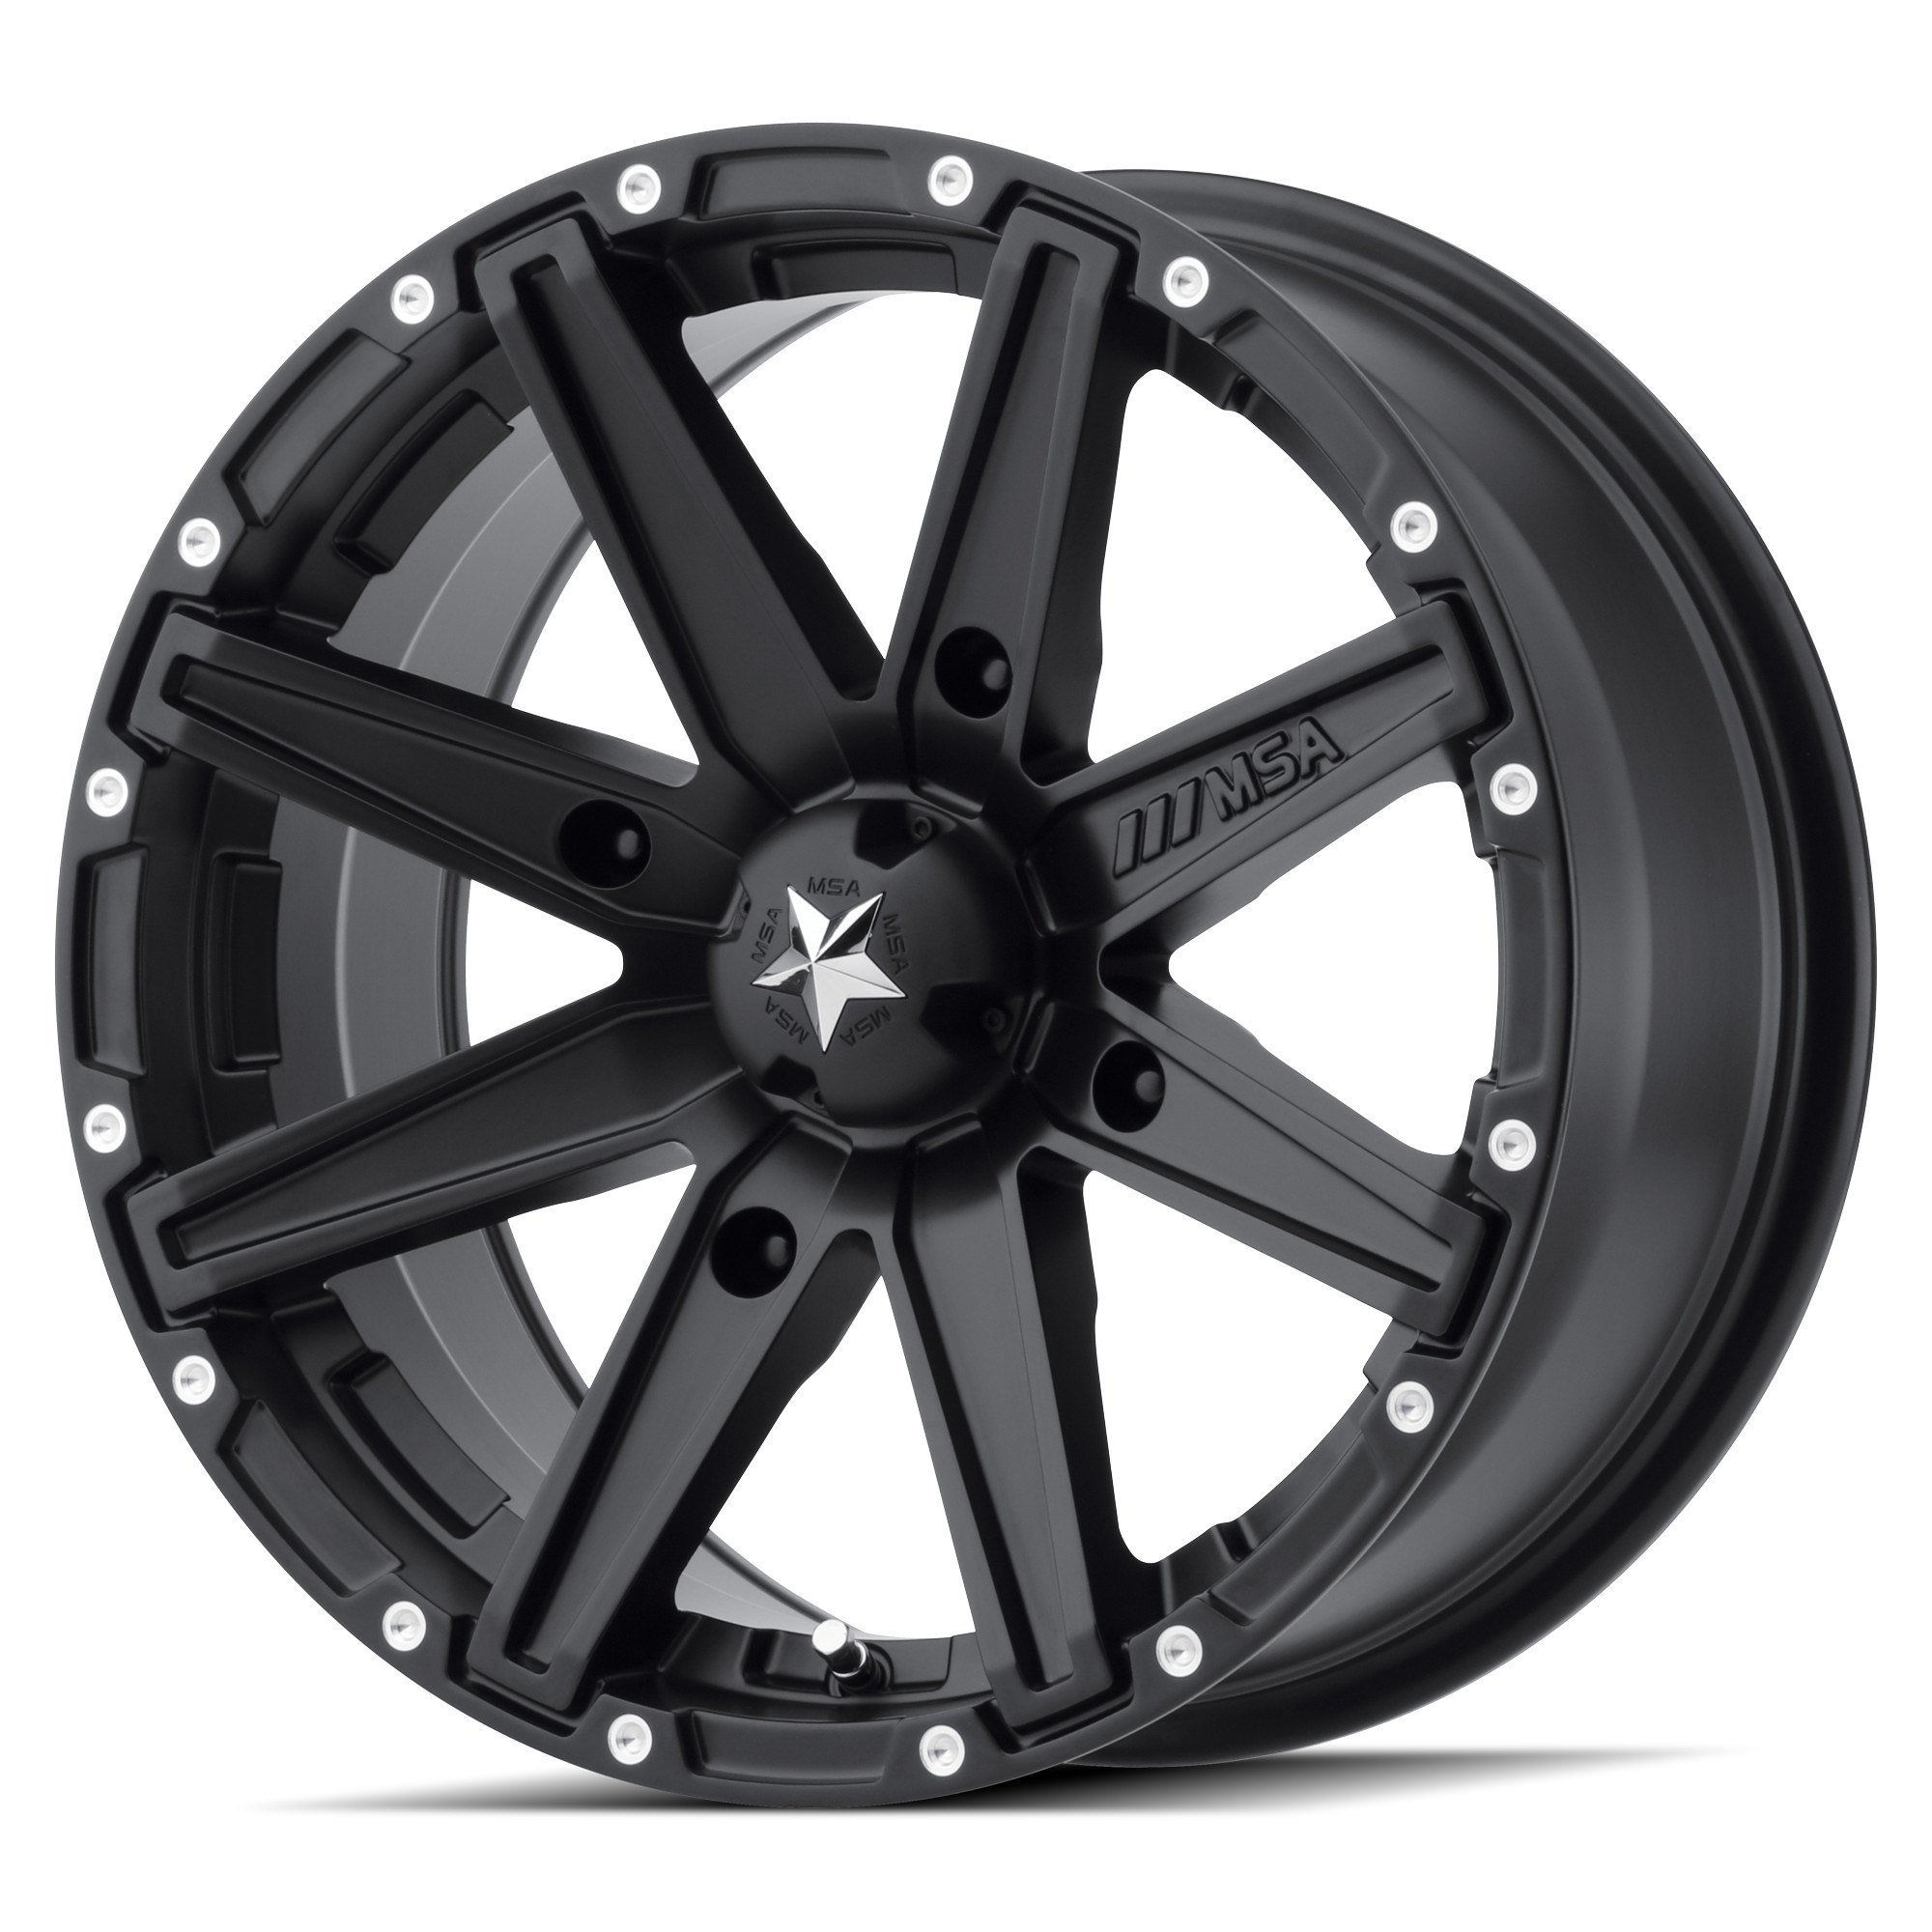 MSA 15x7 4x156 M33 Clutch Satin Black vannesarja Polaris